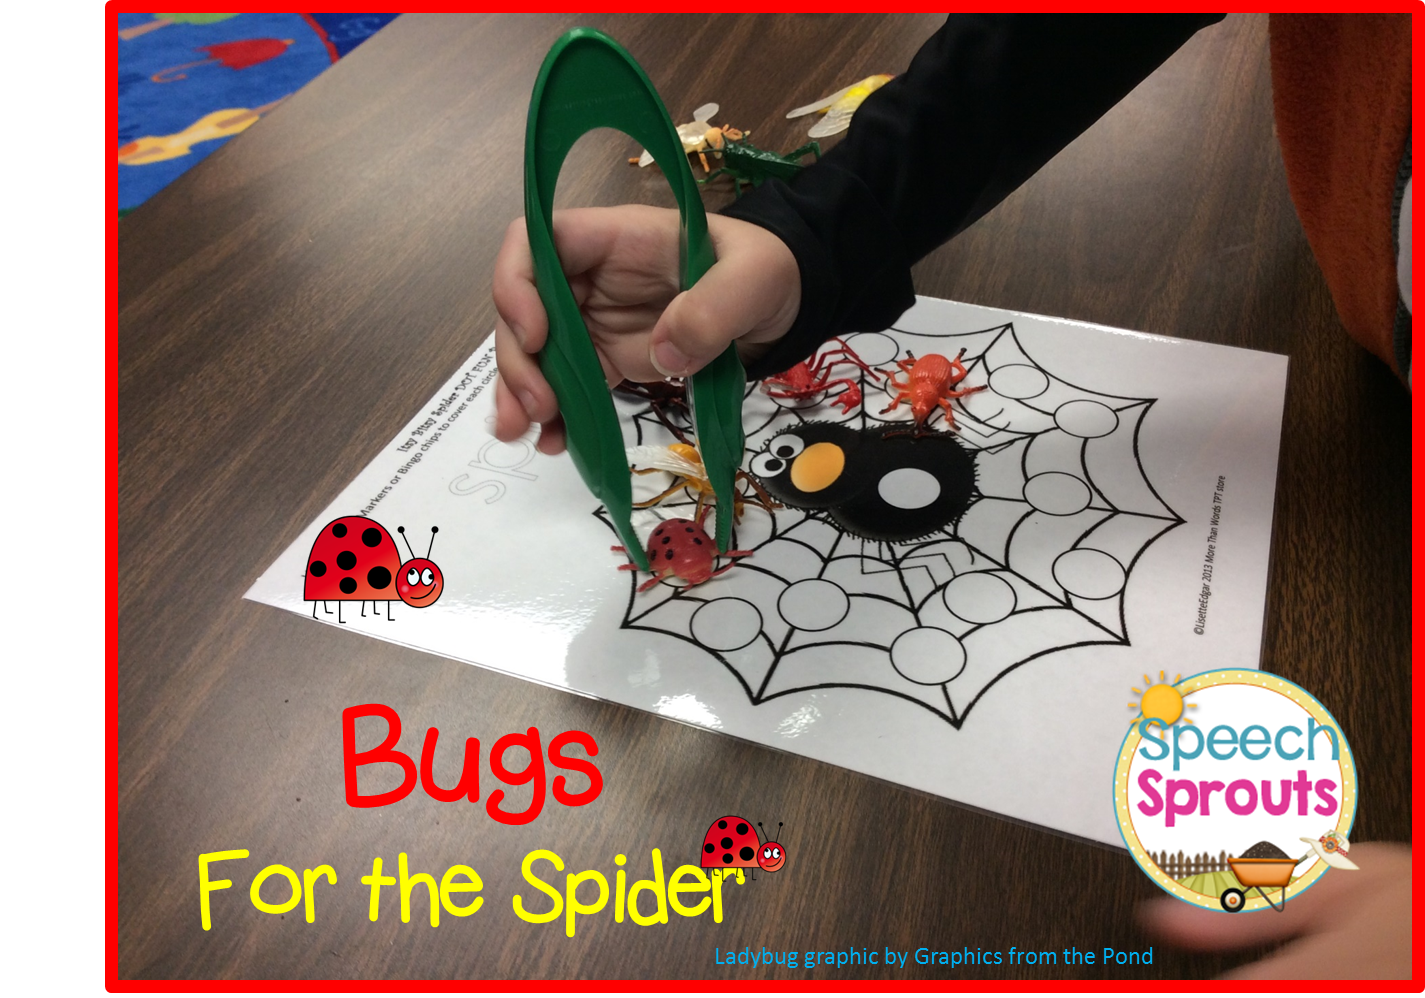 Spider Activities in Speech therapy www.speechsproutstherapy.com